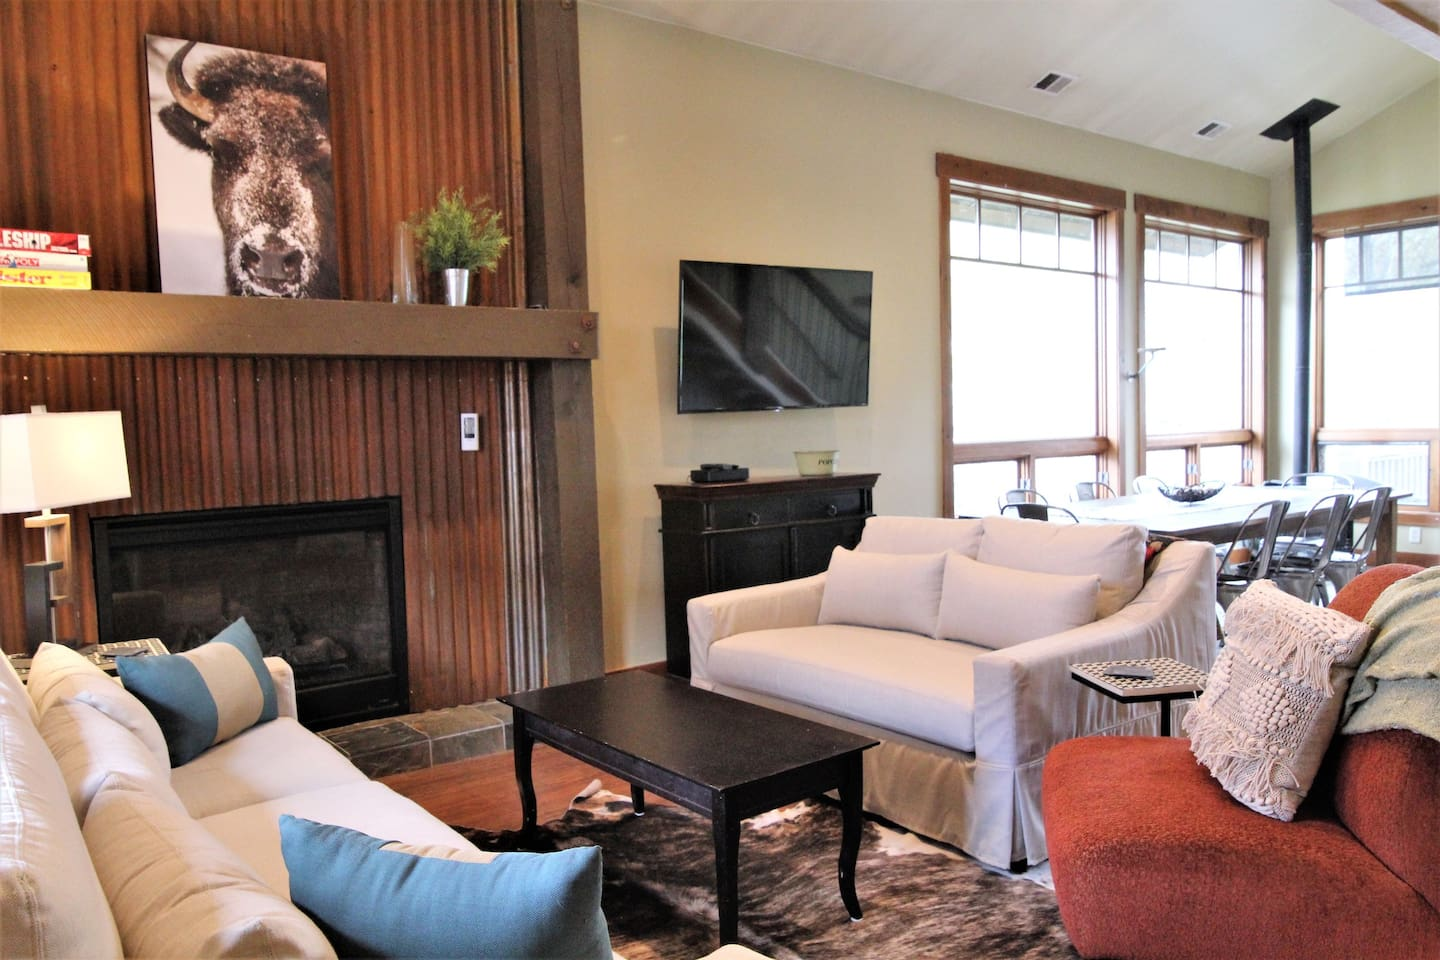 The open living/dining/kitchen features a gas fireplace, comfy couches, and seating for 10. Grab a hot drink from the coffee bar and cozy up with a puzzle or provided board games and puzzles.